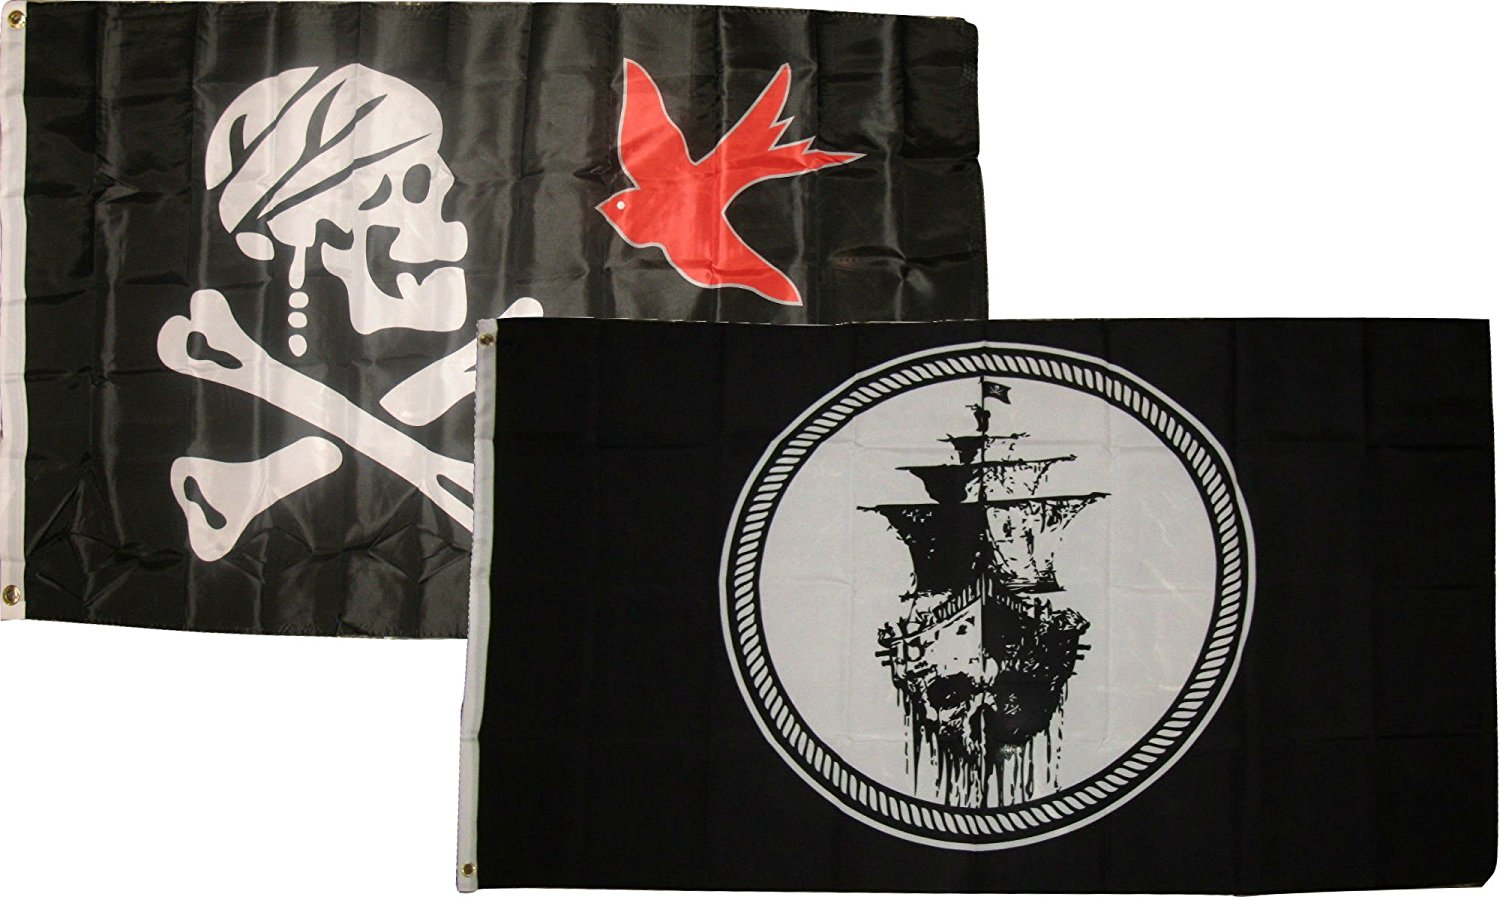 3x5 3'x5' Wholesale Combo Jolly Roger Pirate Jack Sparrow Black Pearl Flags Flag House Banner Grommets Double Stitched Metal Eyelets For Hoisting Fade Resistant Premium Quality